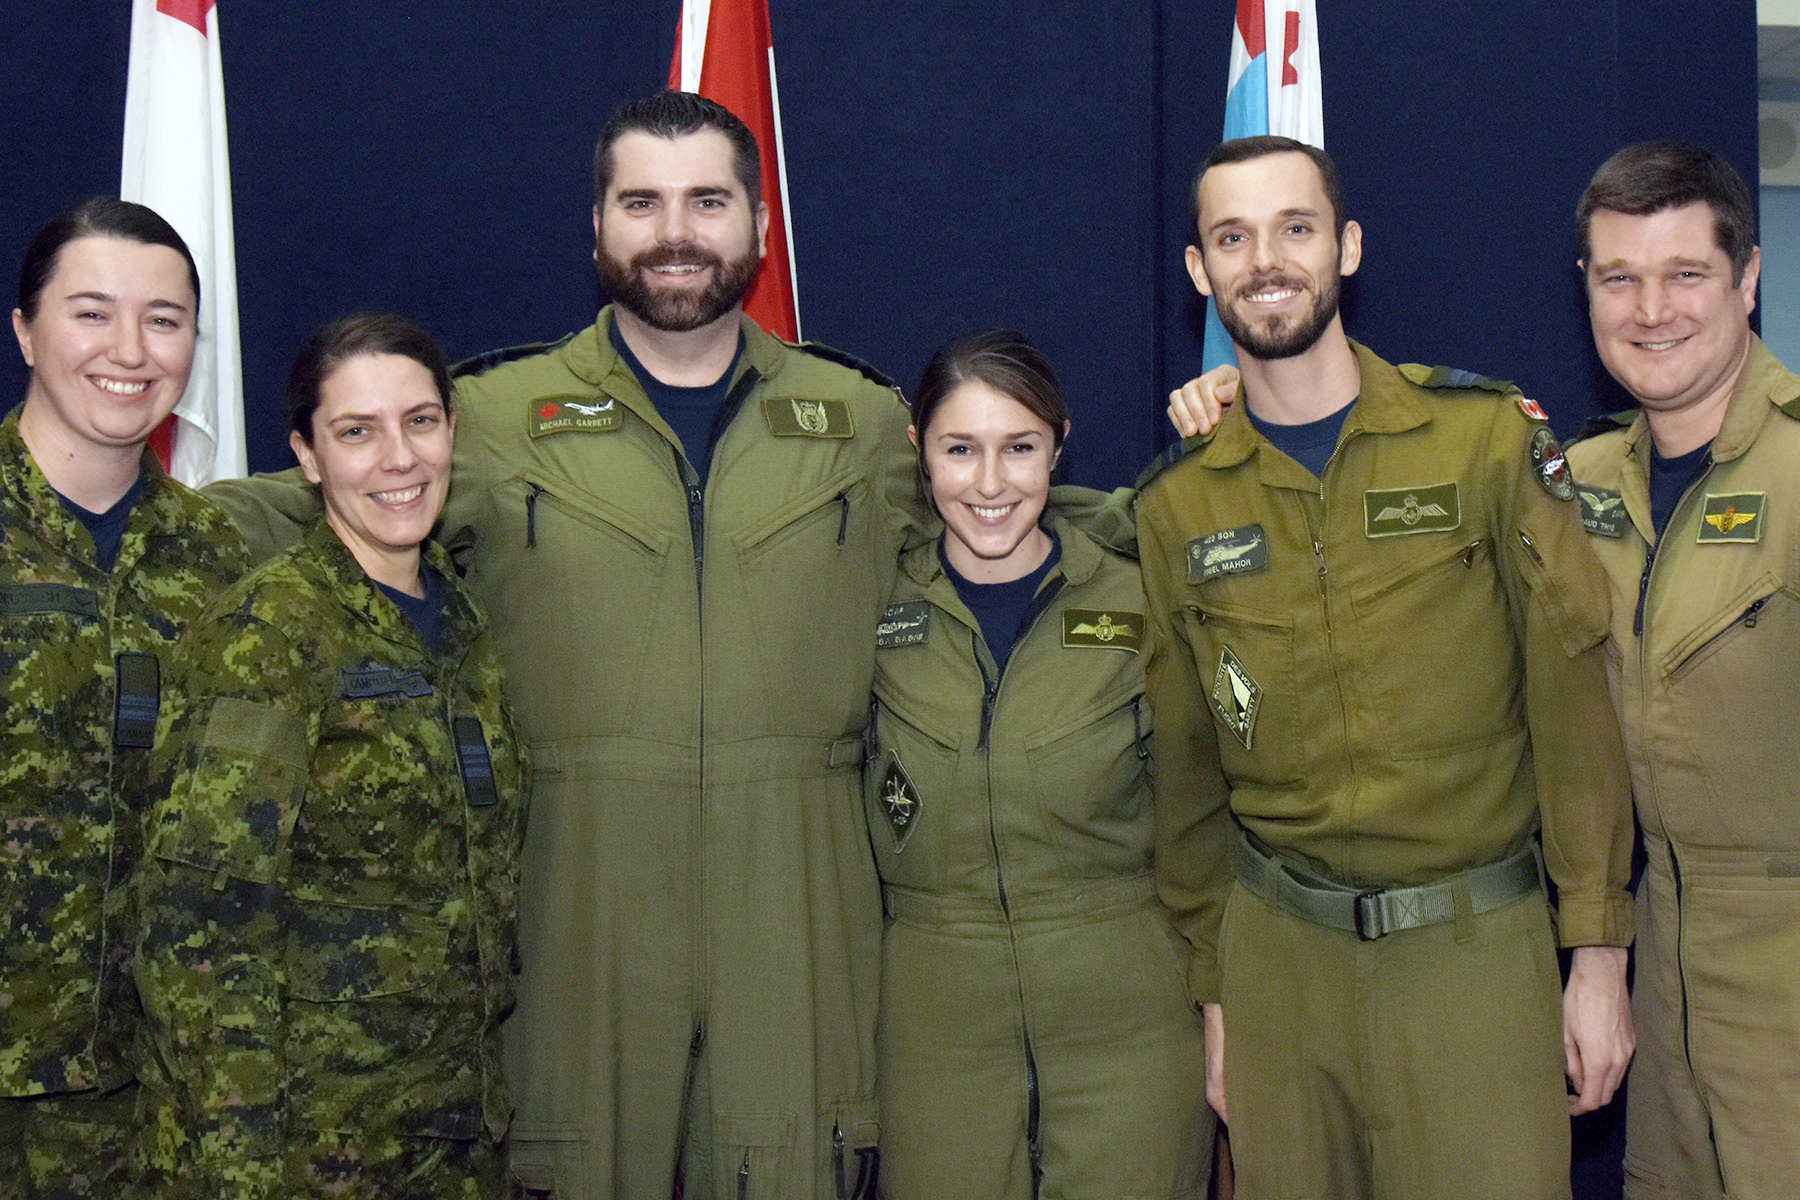 Six people wearing green military uniforms standing and smiling.